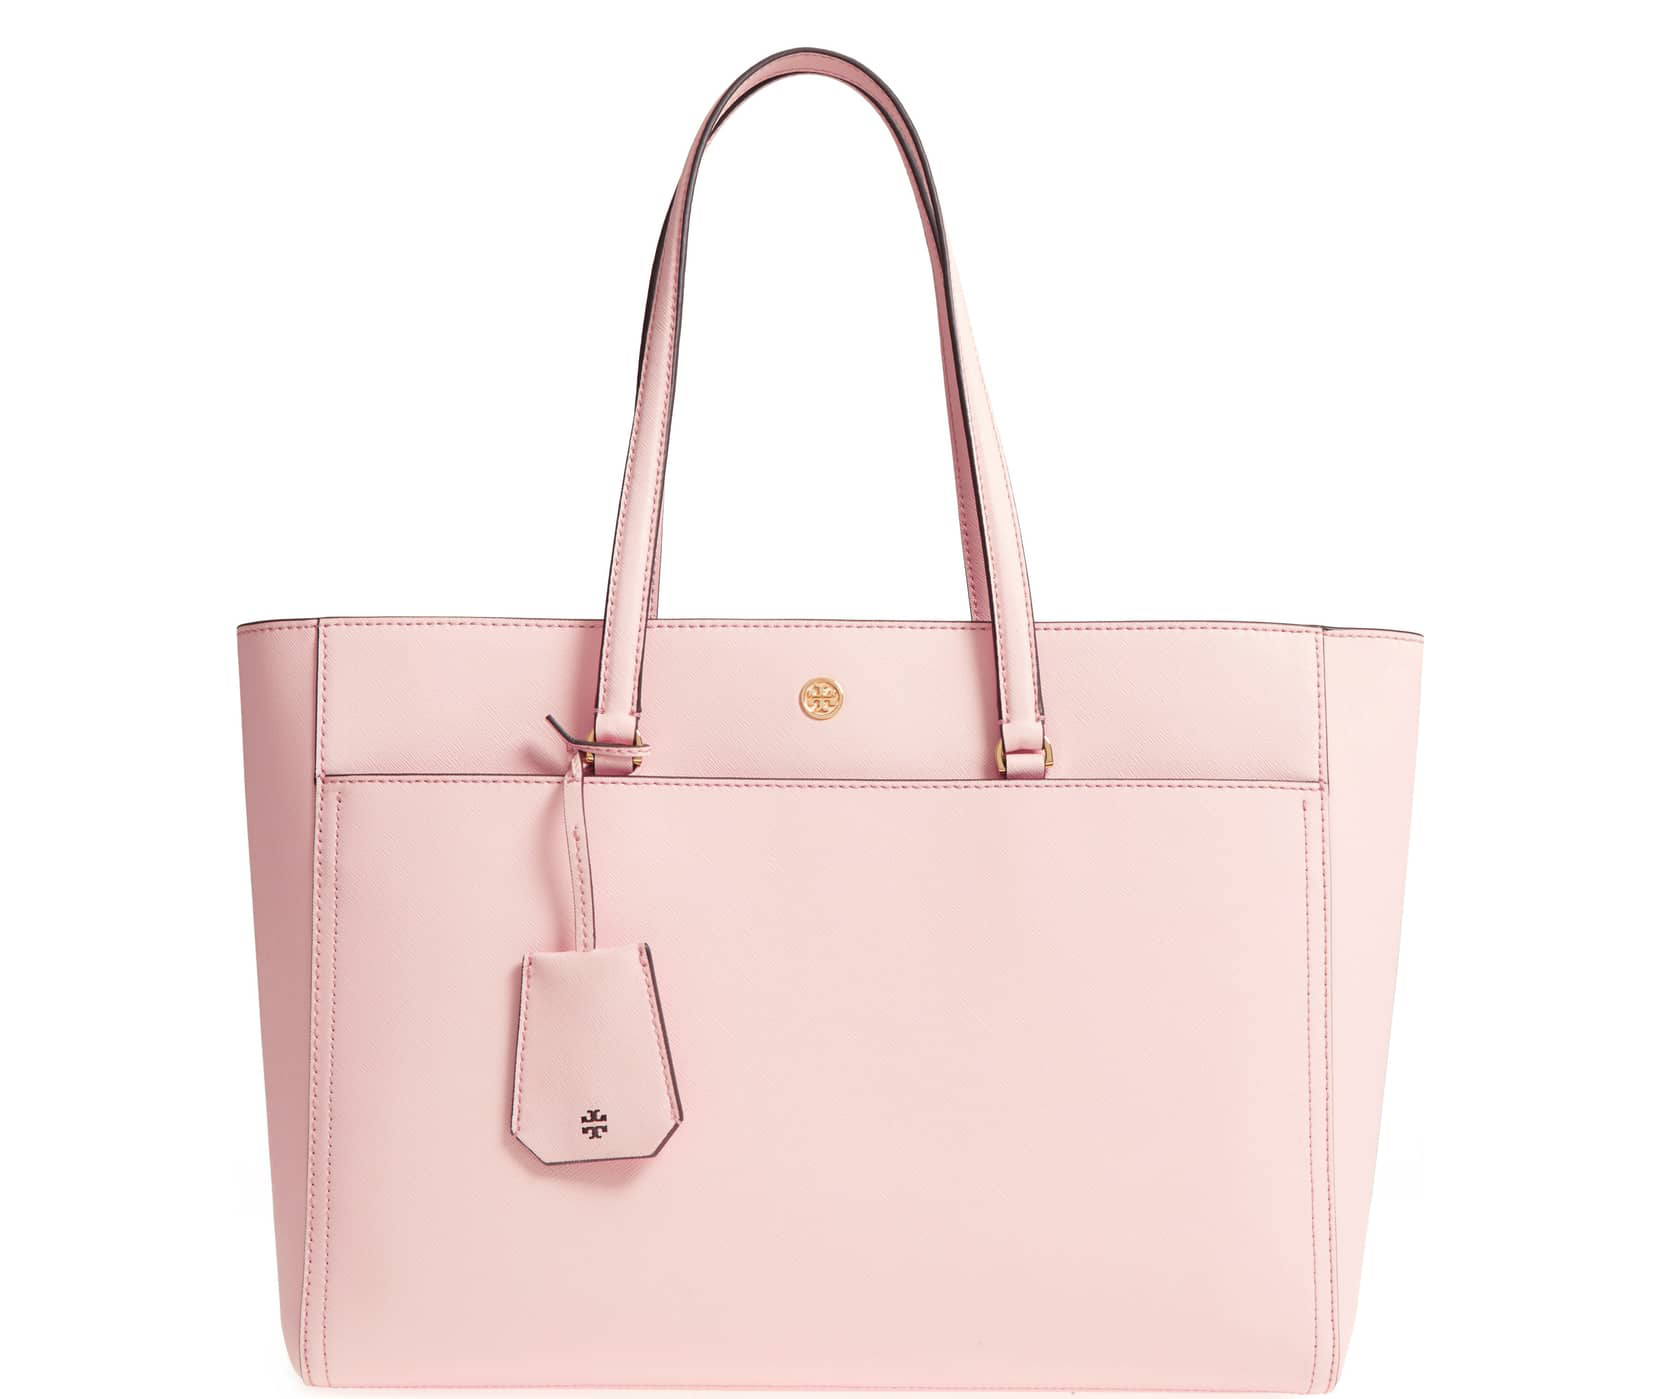 a84a144edcf8 This Tory Burch Tote Is on Sale and Will Replace Our Old Work Bag